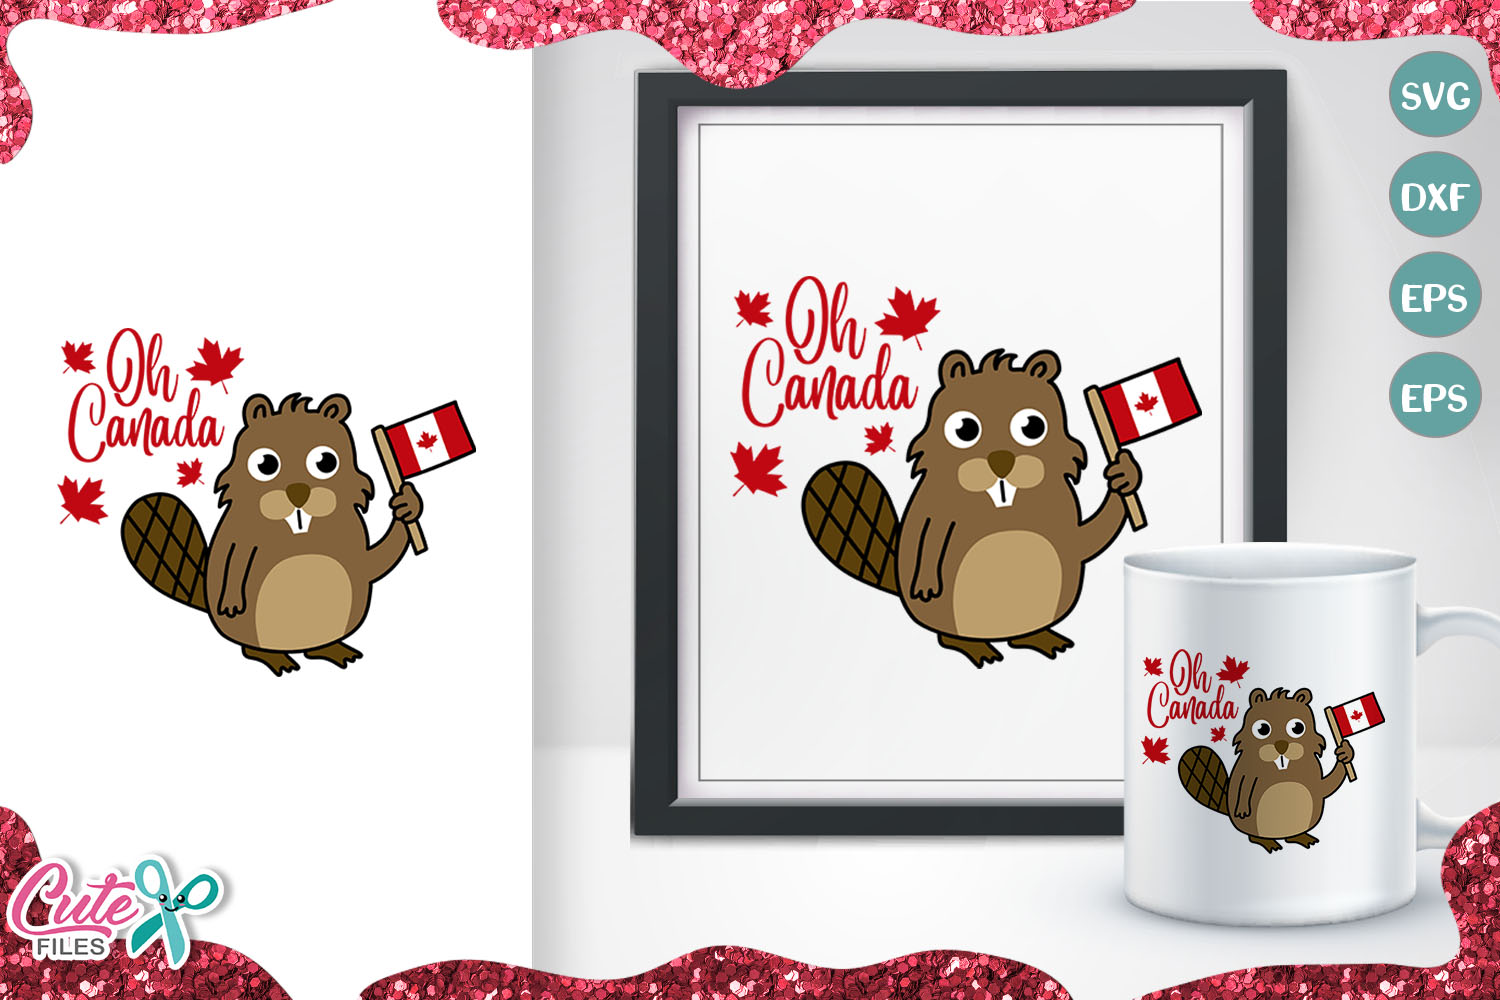 Oh Canada Beaver For Canada Day Svg Graphic By Cute Files